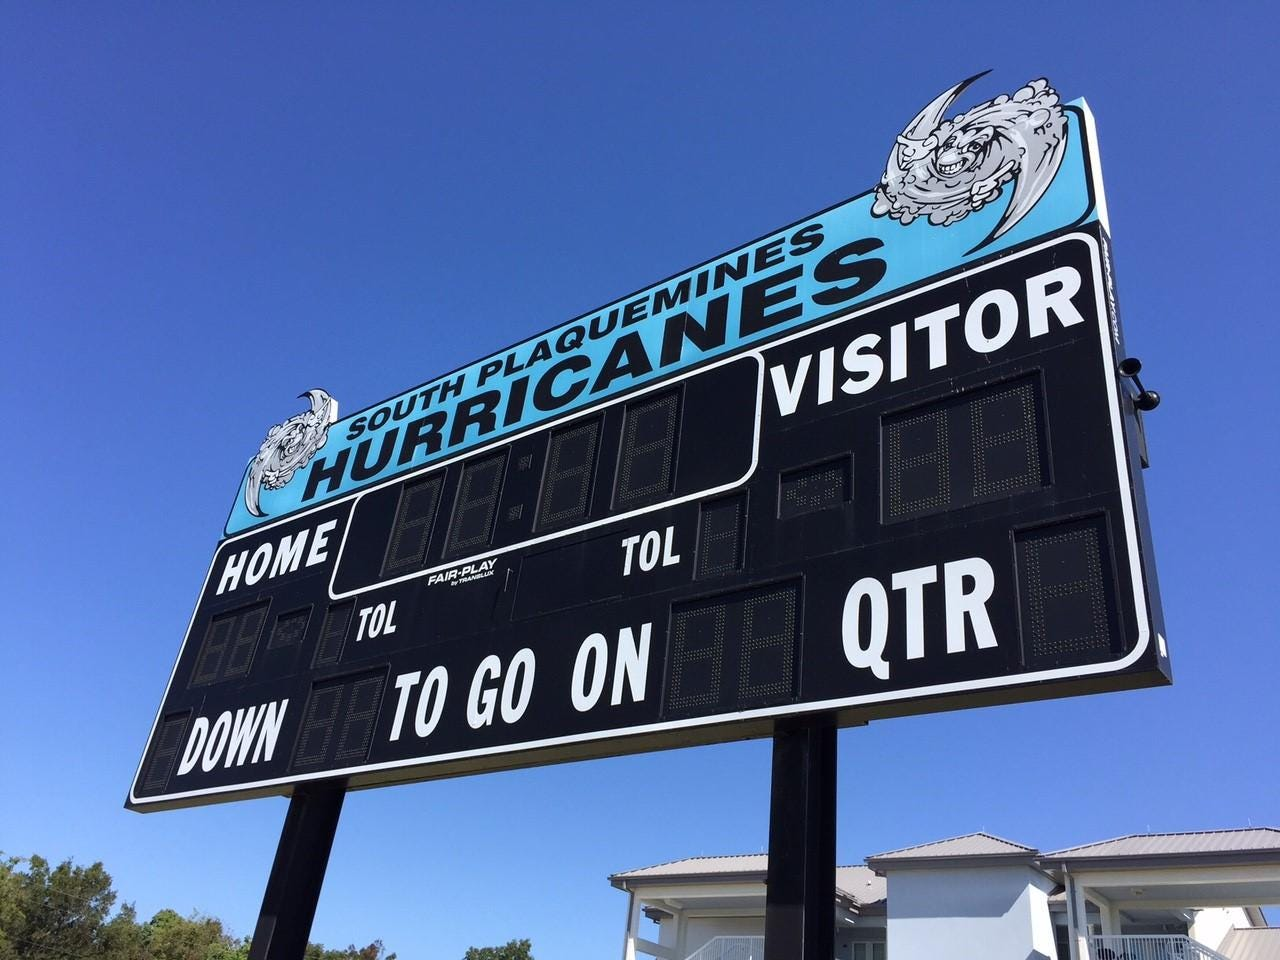 The scoreboard at Bradley's HS football field in Port Sulphur. They were named the Hurricanes after Katrina.